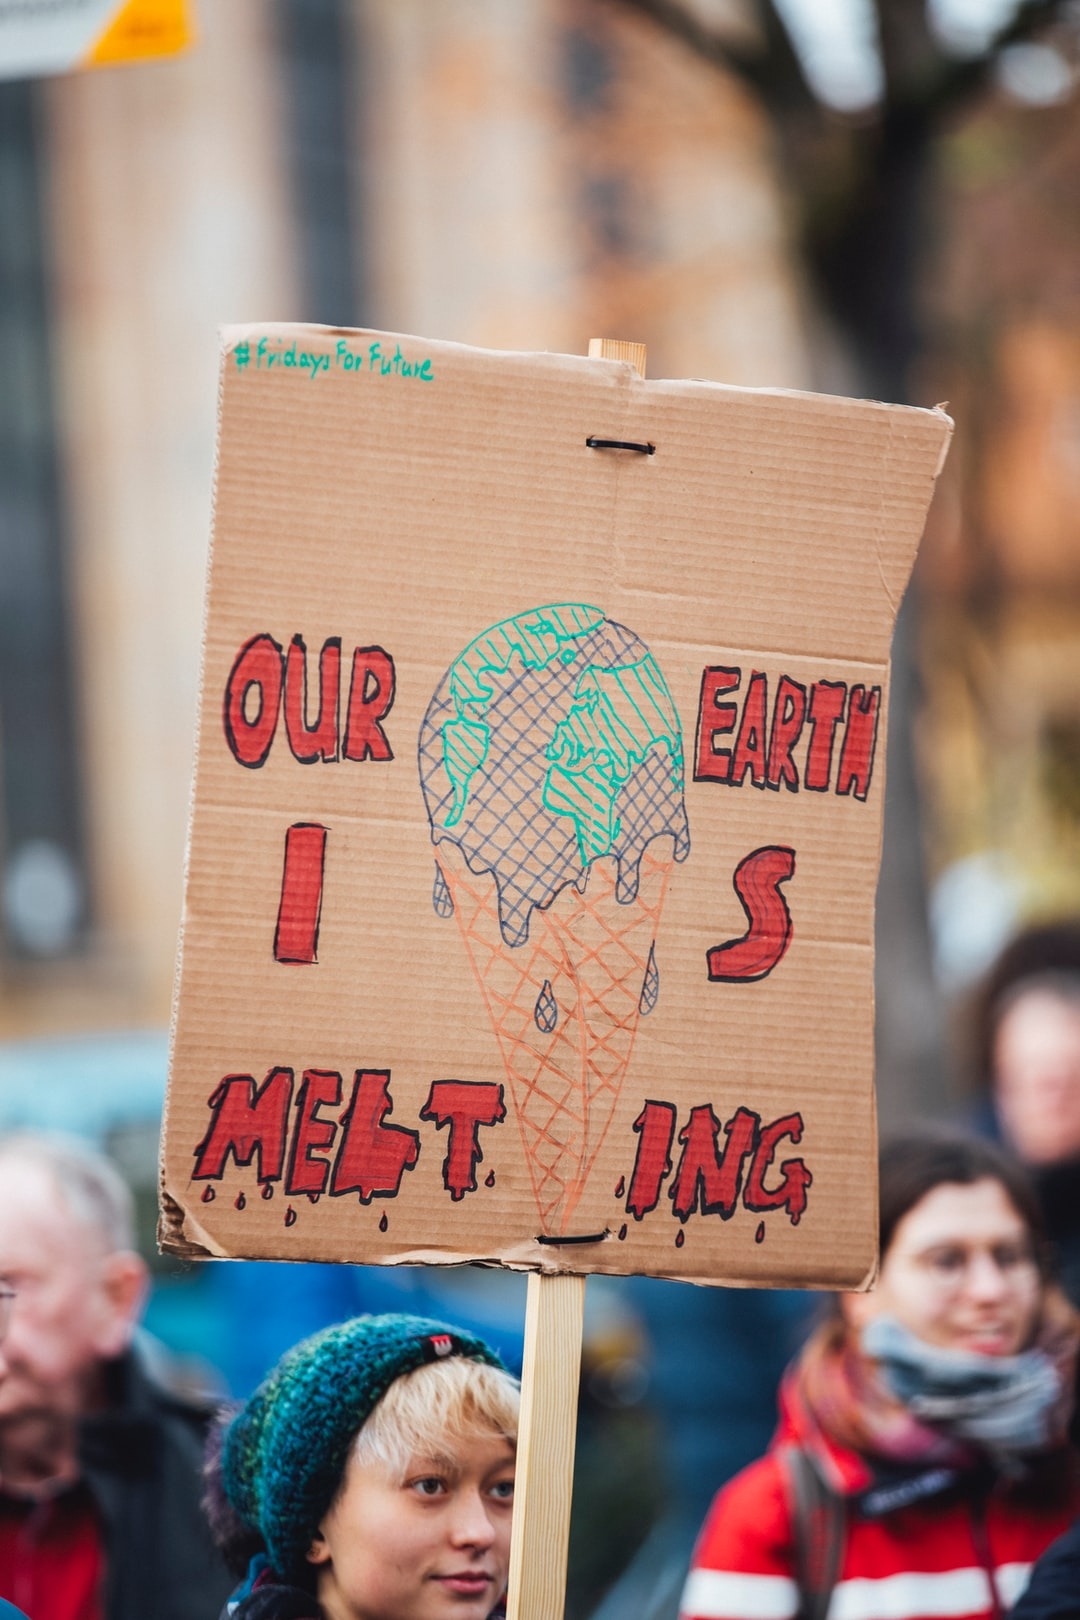 OUR EARTH IS MELTING –climate protest demonstration strike fridays for future